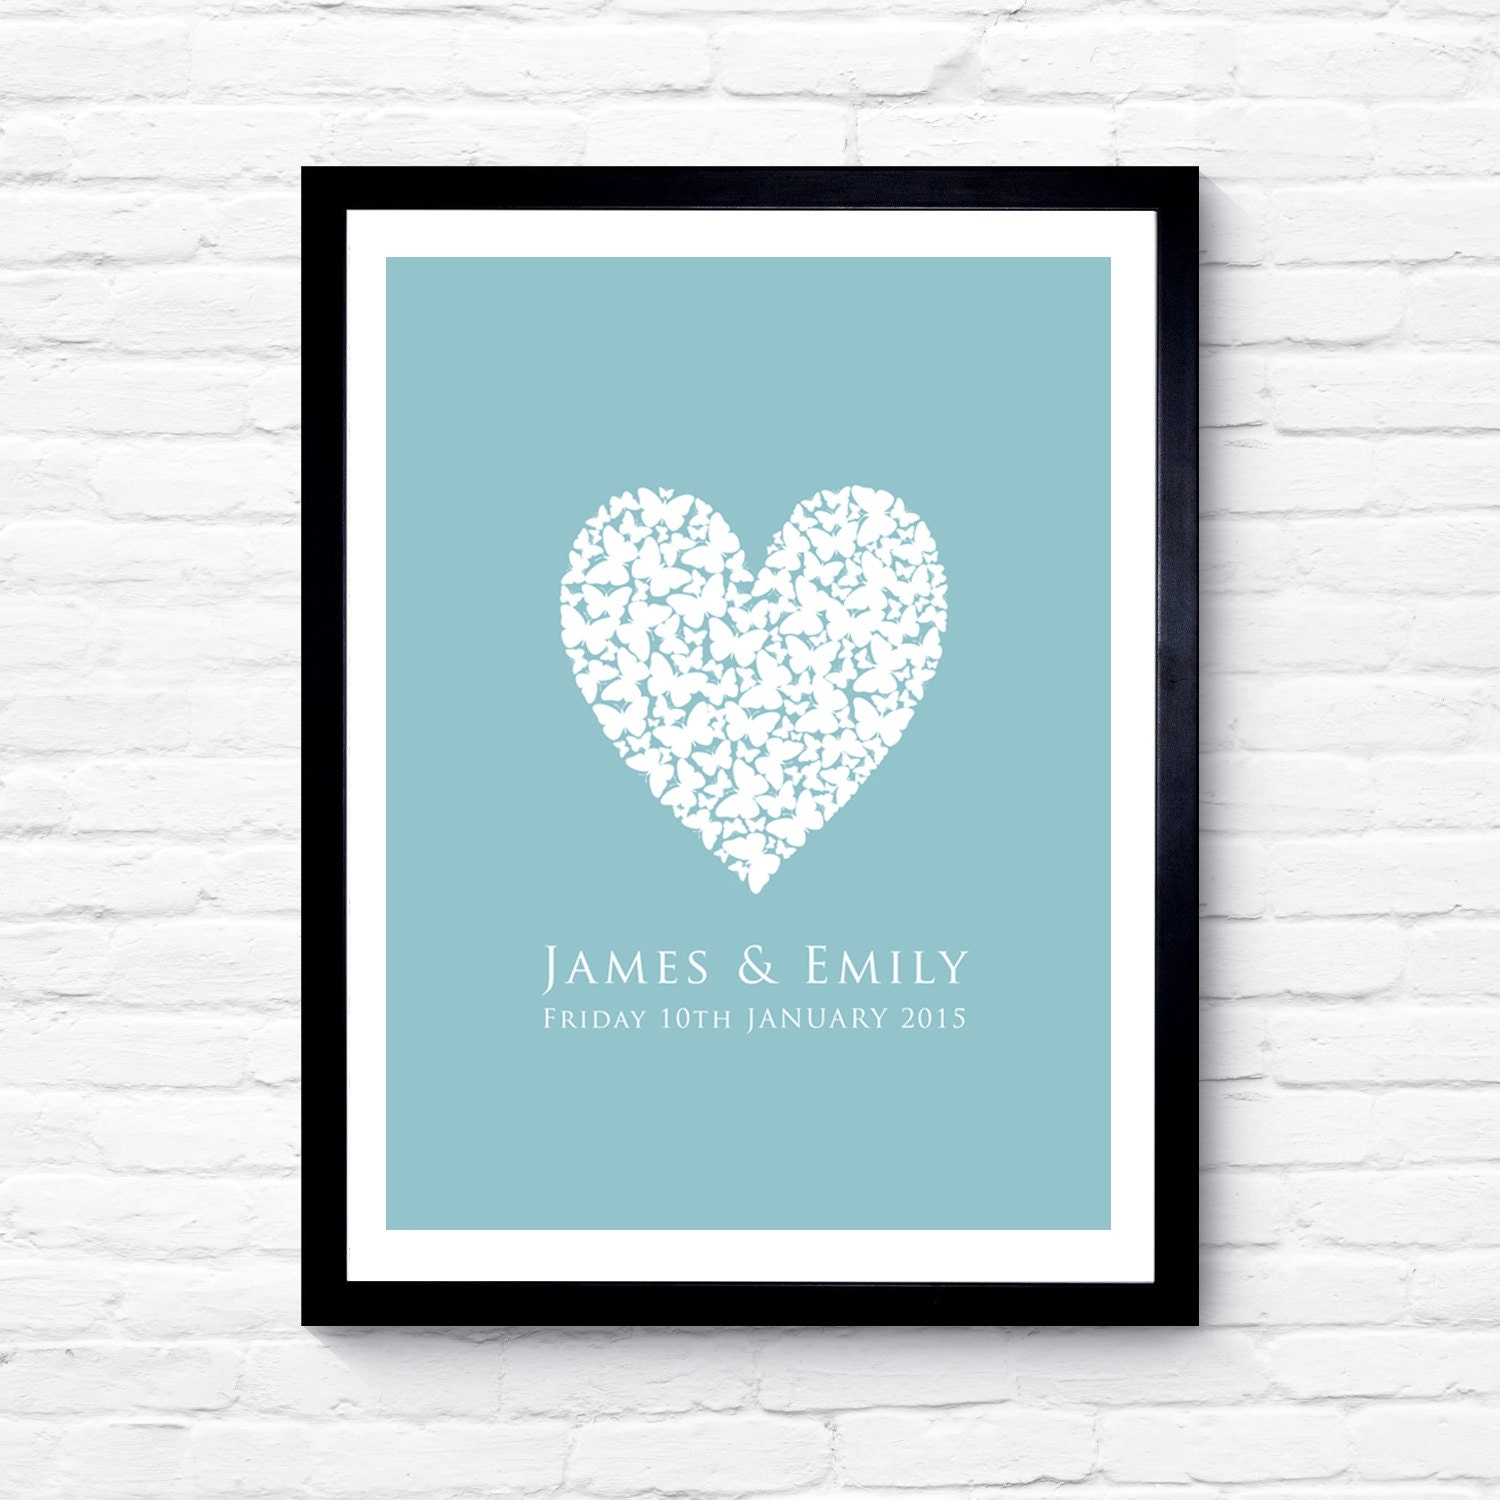 Minhou east wall home decoration manufacturer : Personalised butterfly heart print wedding gift